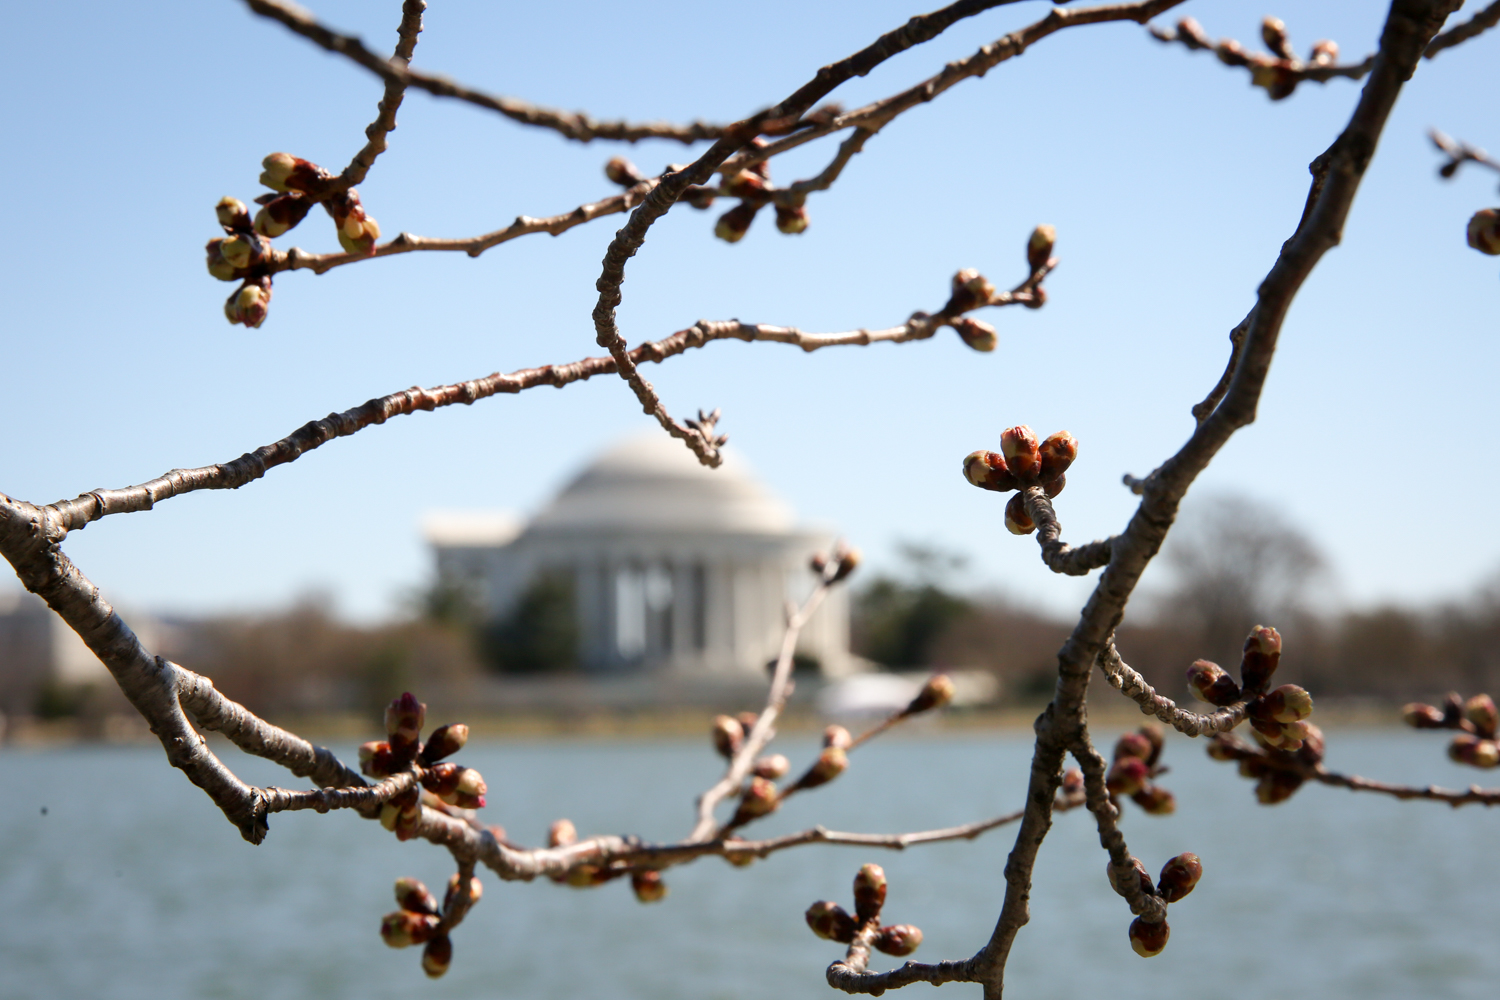 The weather has been all over the place, but those who are hoping the lack of snow will somehow speed up this year's cherry blossom blooms are out of luck.{ } According to NPS, the cherry blossoms along the Tidal Basin reached phase two - visible florets - around March 16. Currently, NPS estimates peak bloom will happen between March 27-31. Still, the lack of pink blooms haven't stopped the relentless flow of tourists. (Amanda Andrade-Rhoades/DC Refined)